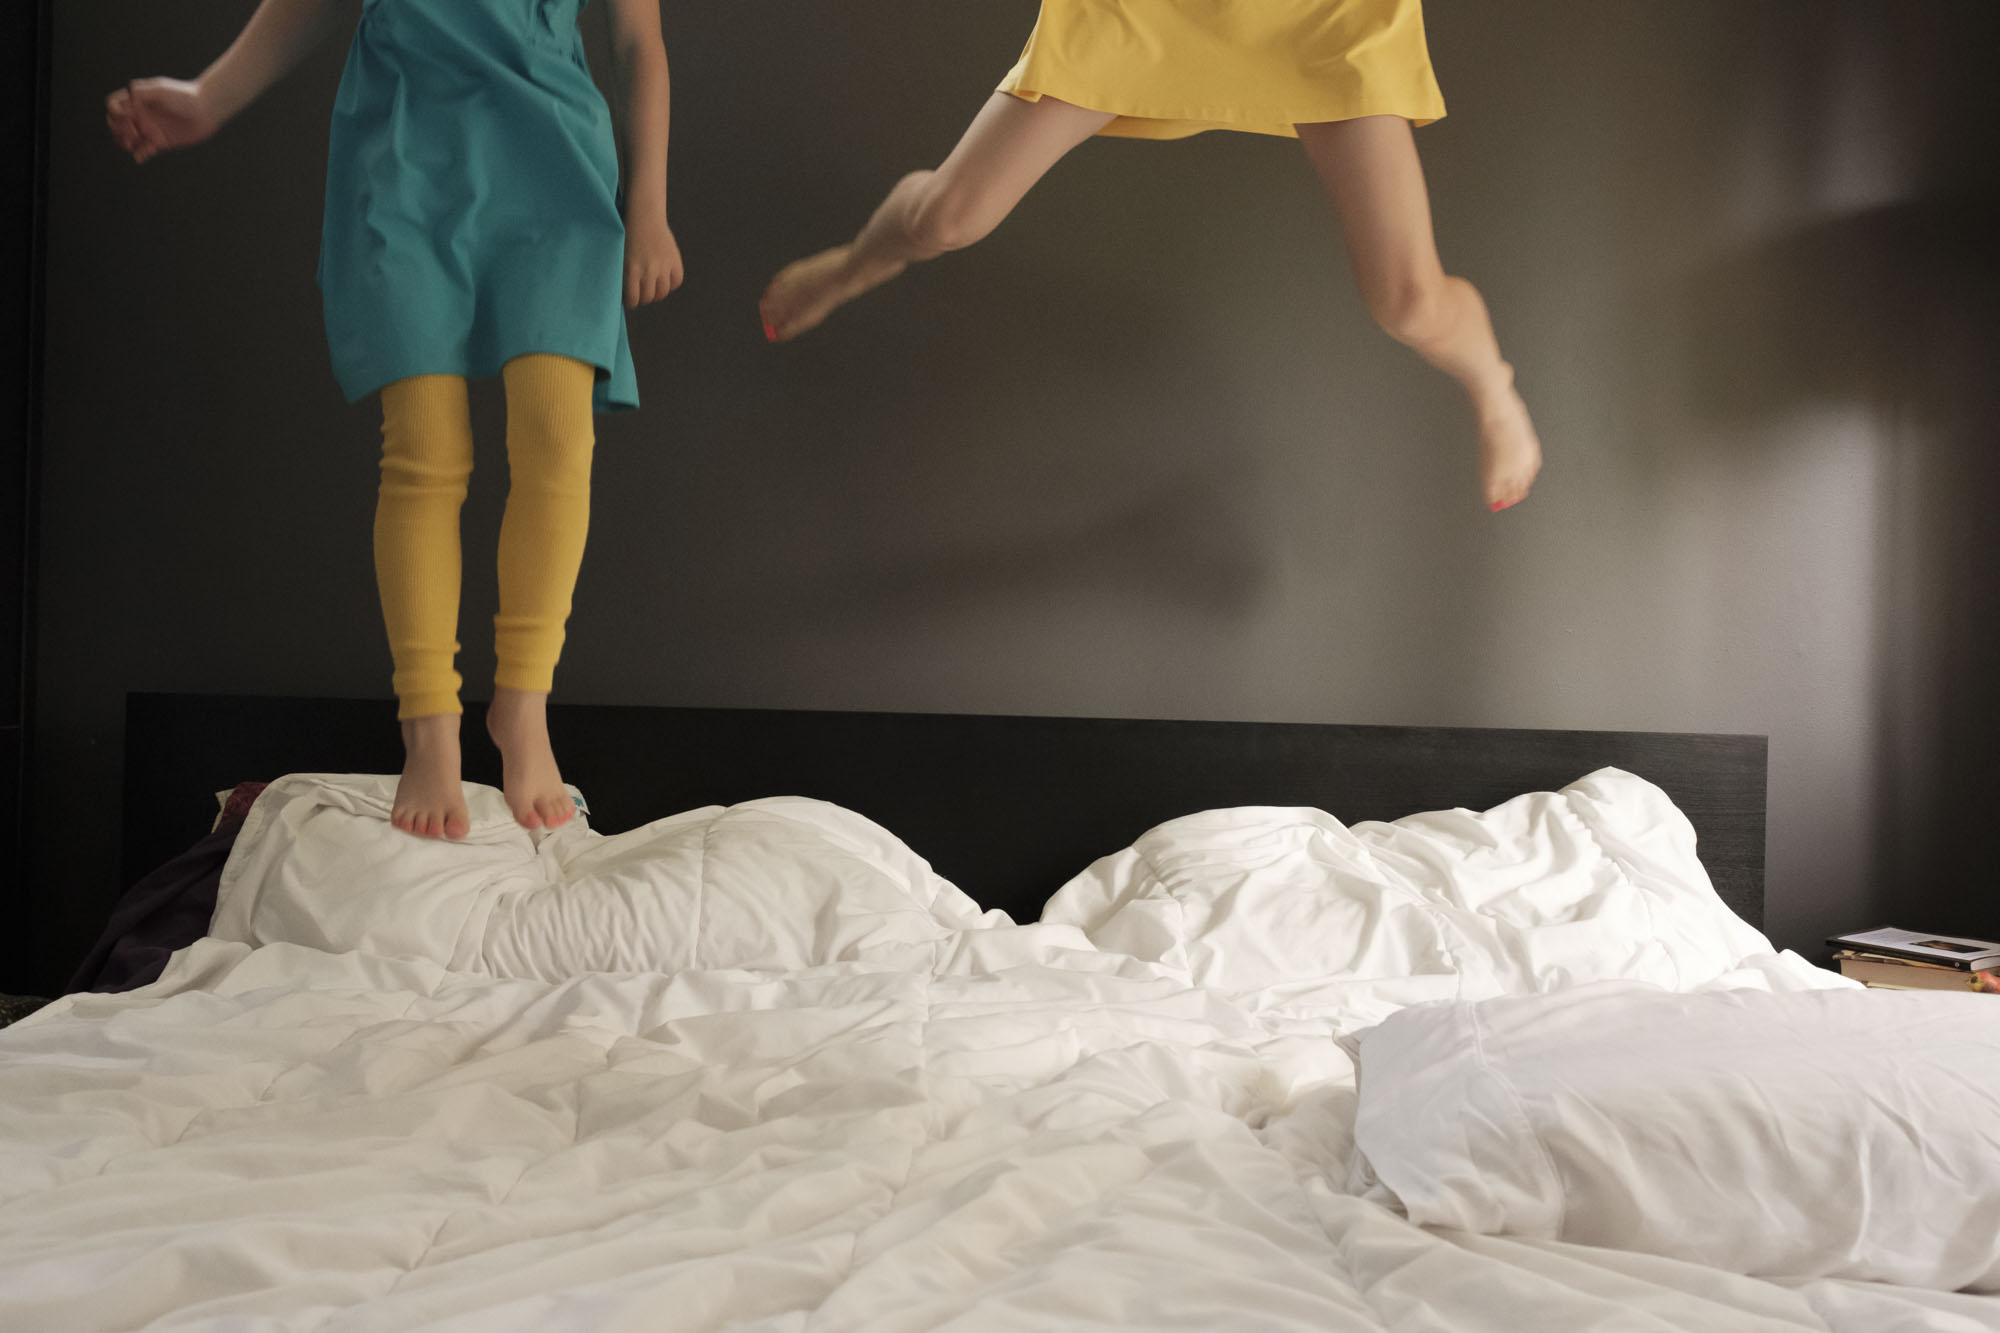 two girls in colorful dresses jumping on a bed